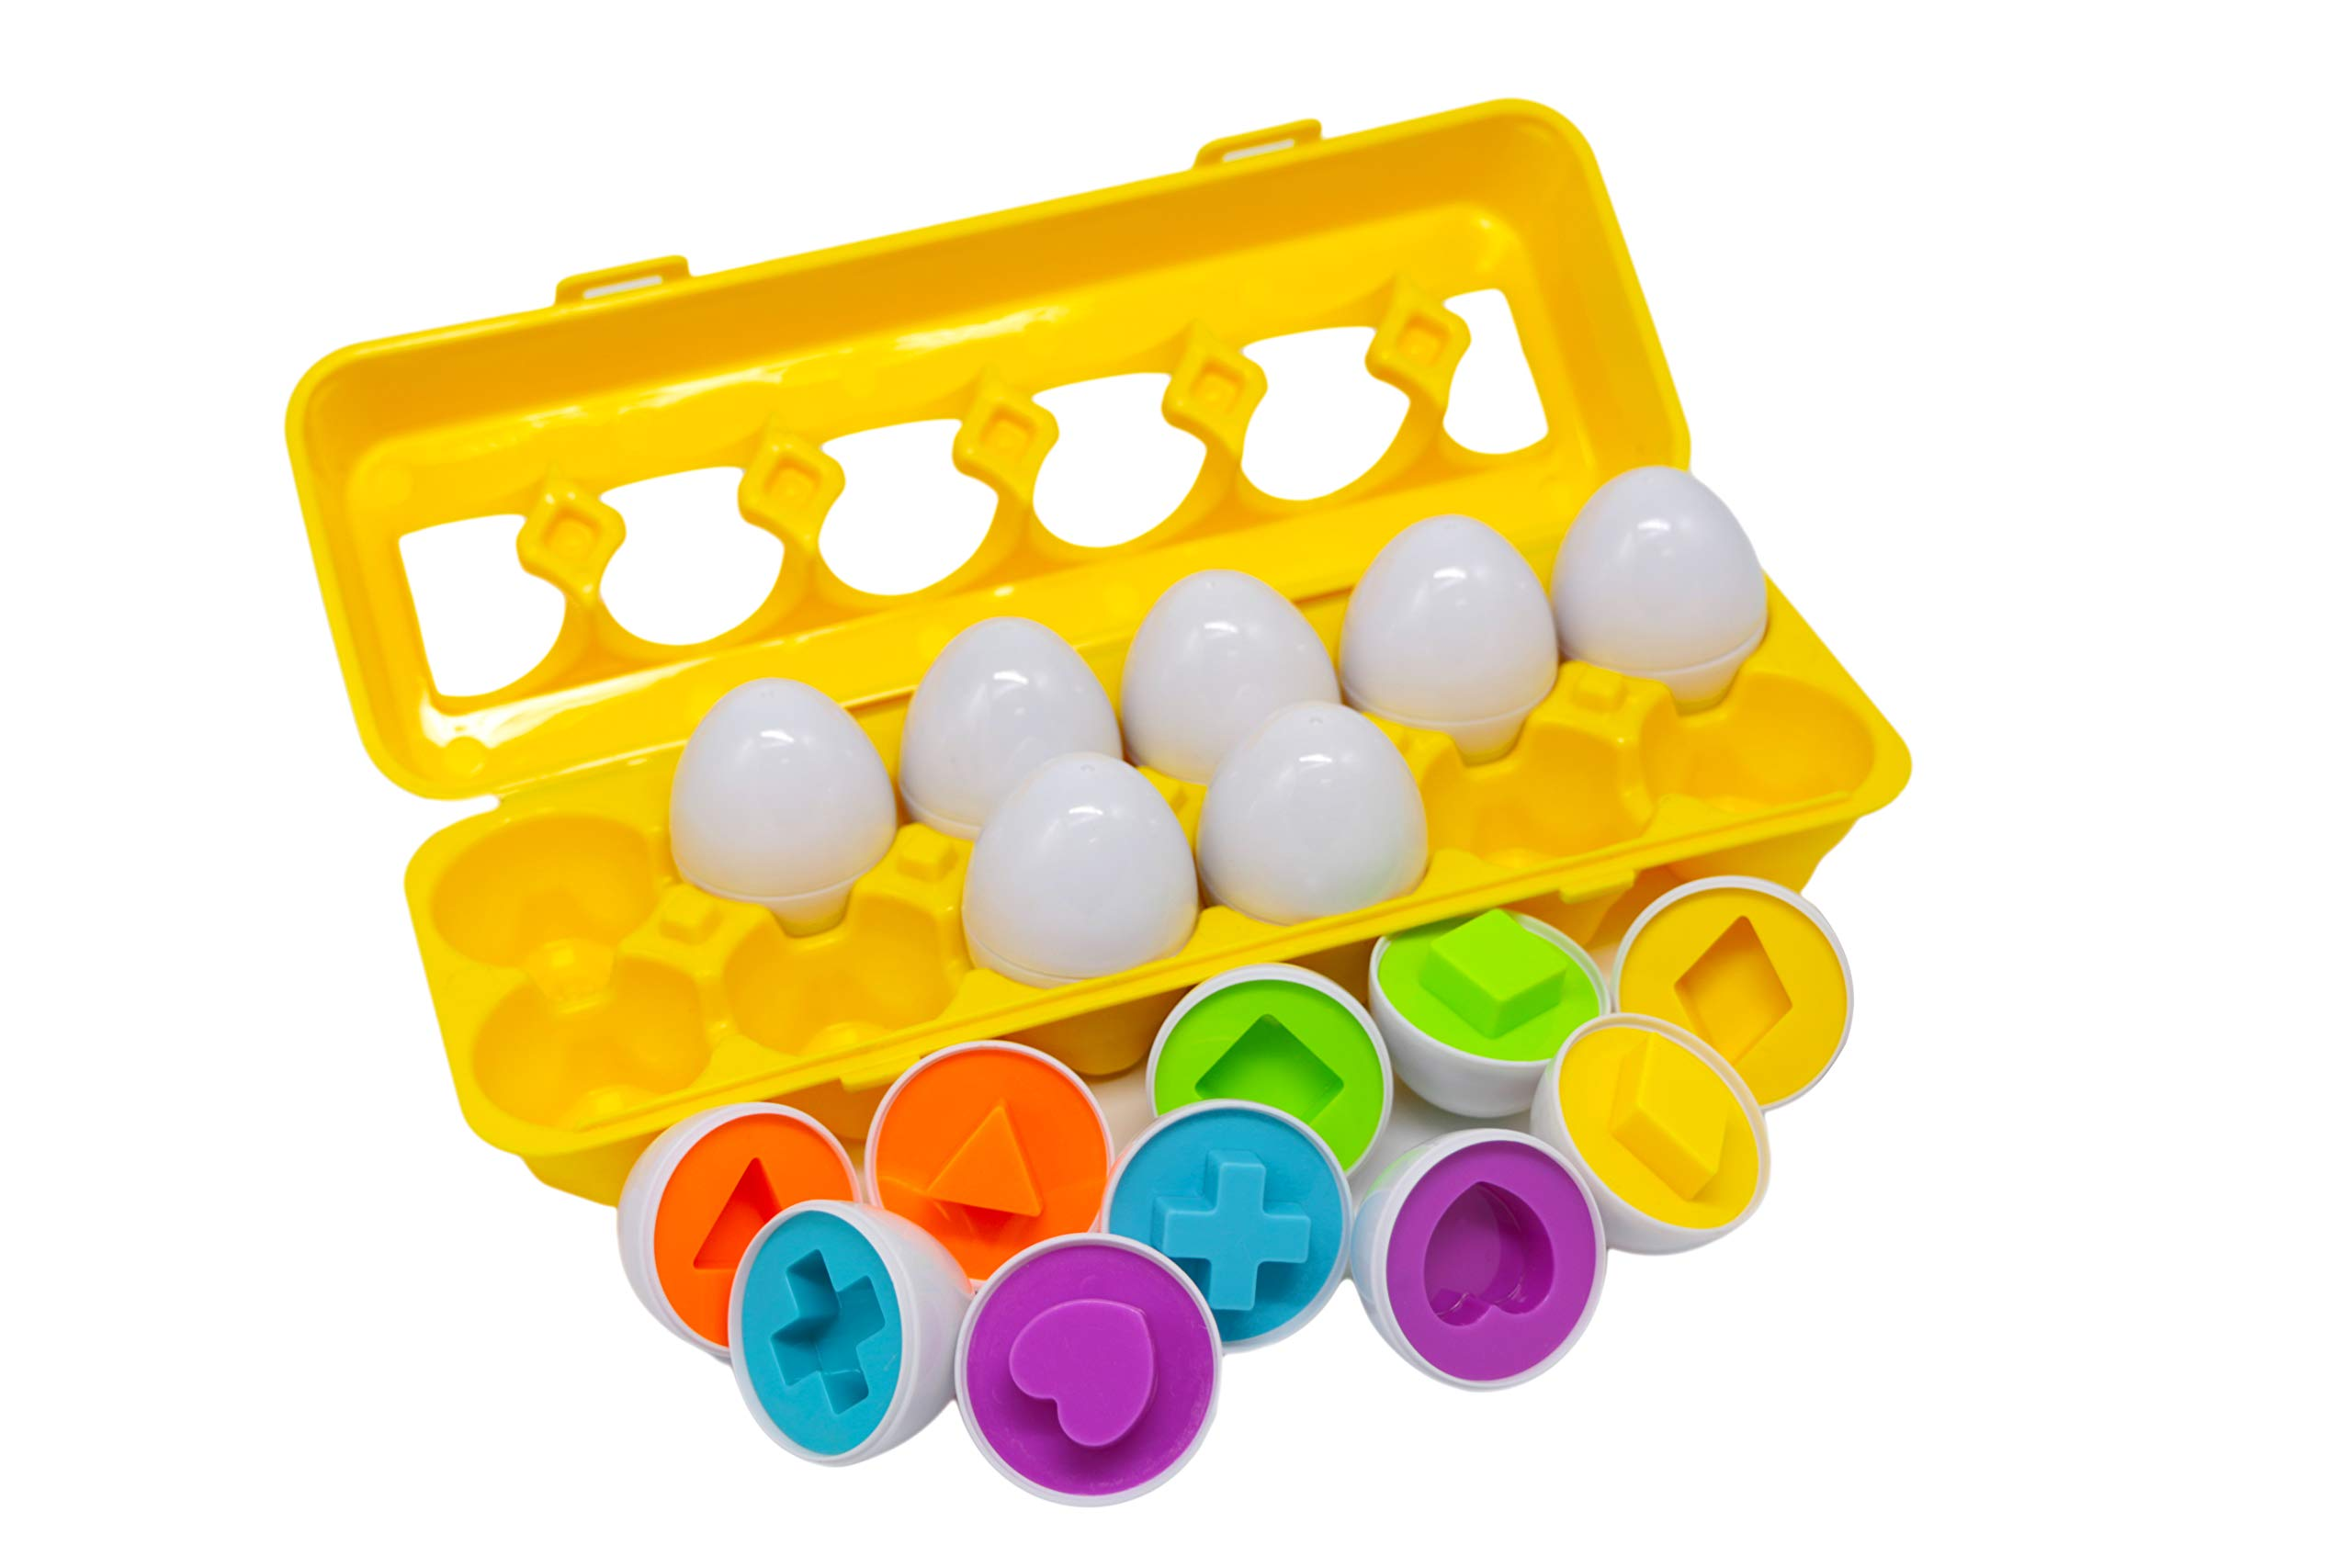 Color & Shape Matching Egg Set,Educational Train Color & Shape Recognition Skills,Learning Color & Shape Match,Montessori Toys for Age 2+ Kids Toddlers Boys Girls